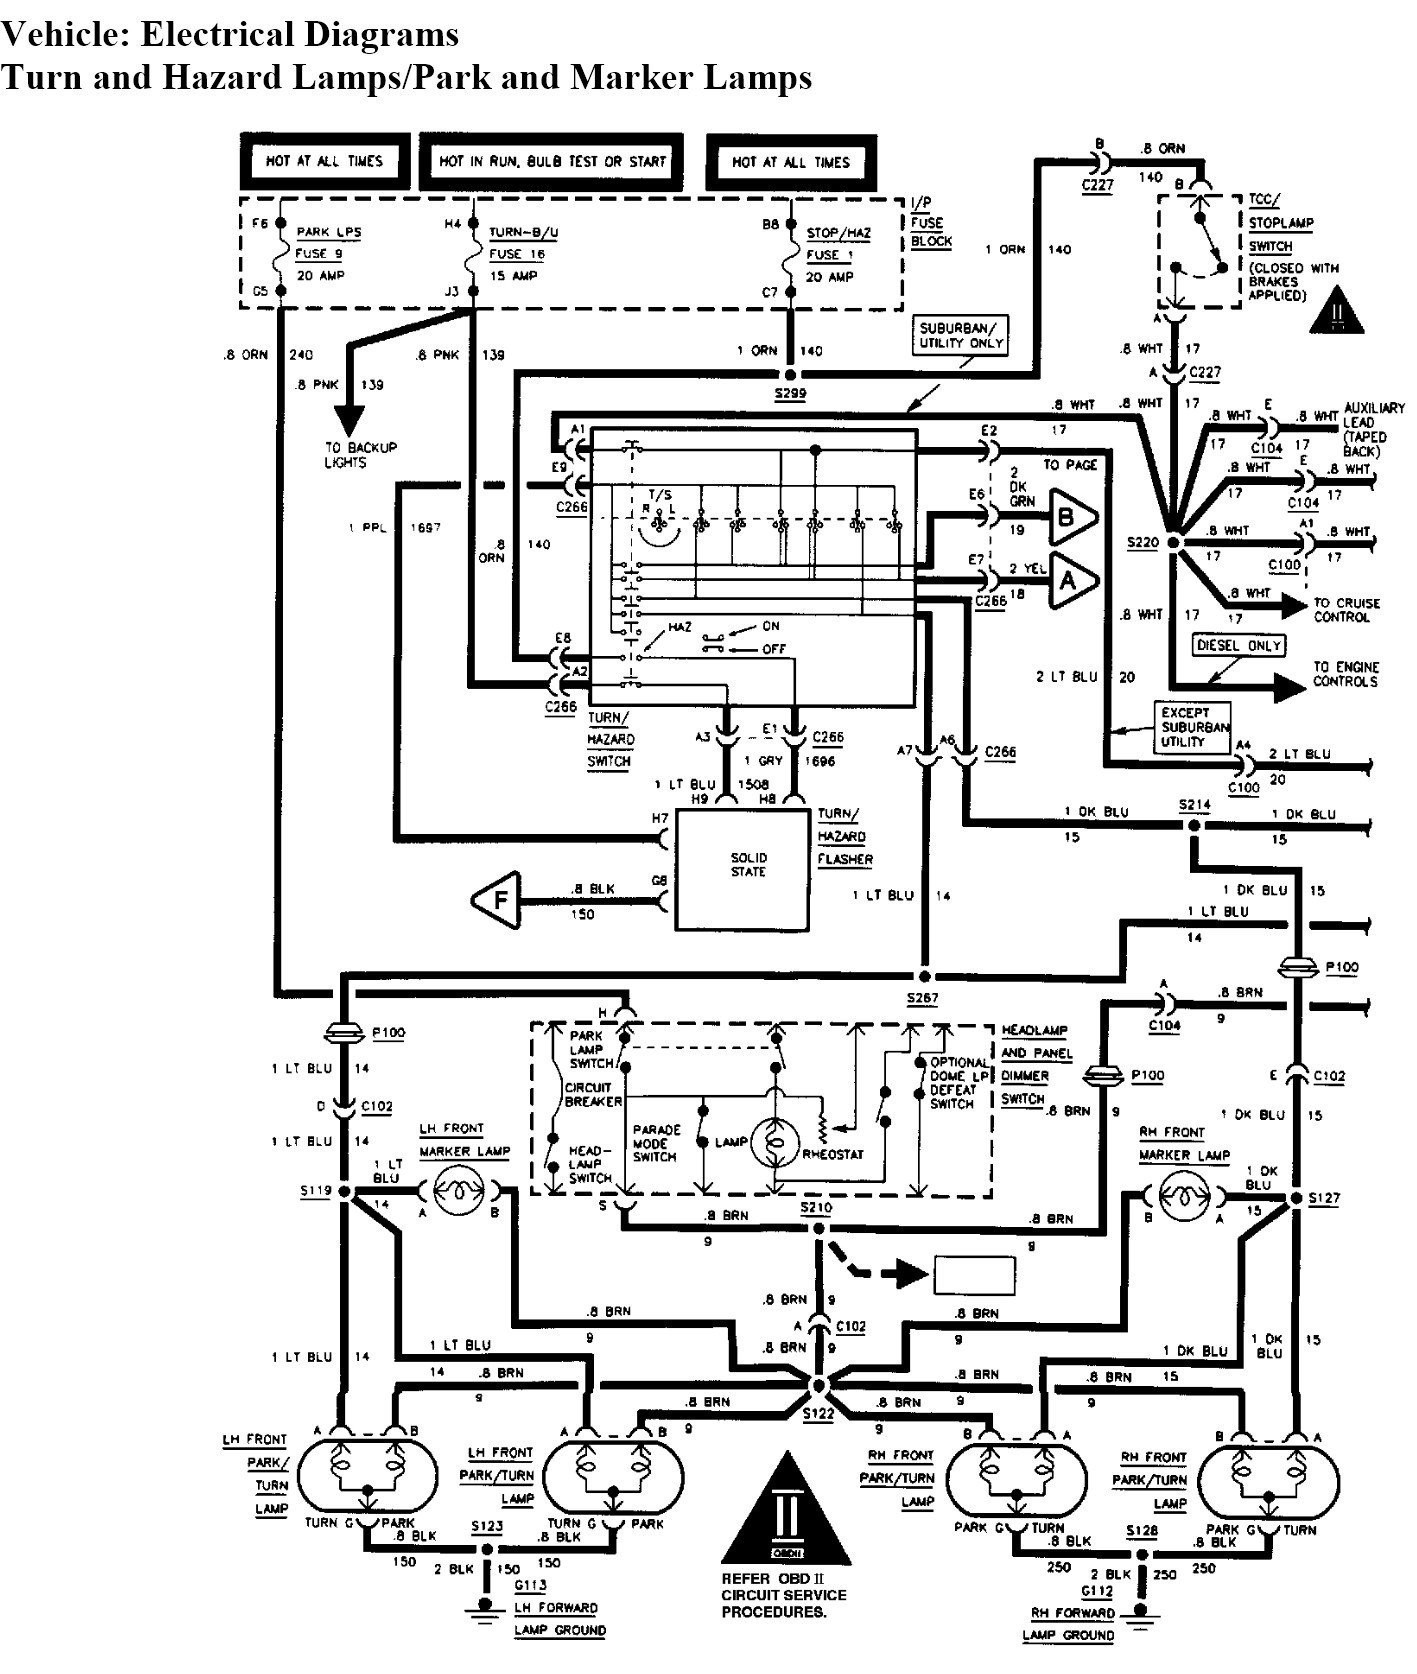 [DIAGRAM] 2000 Jeep Cherokee Brake Light Wiring Diagram